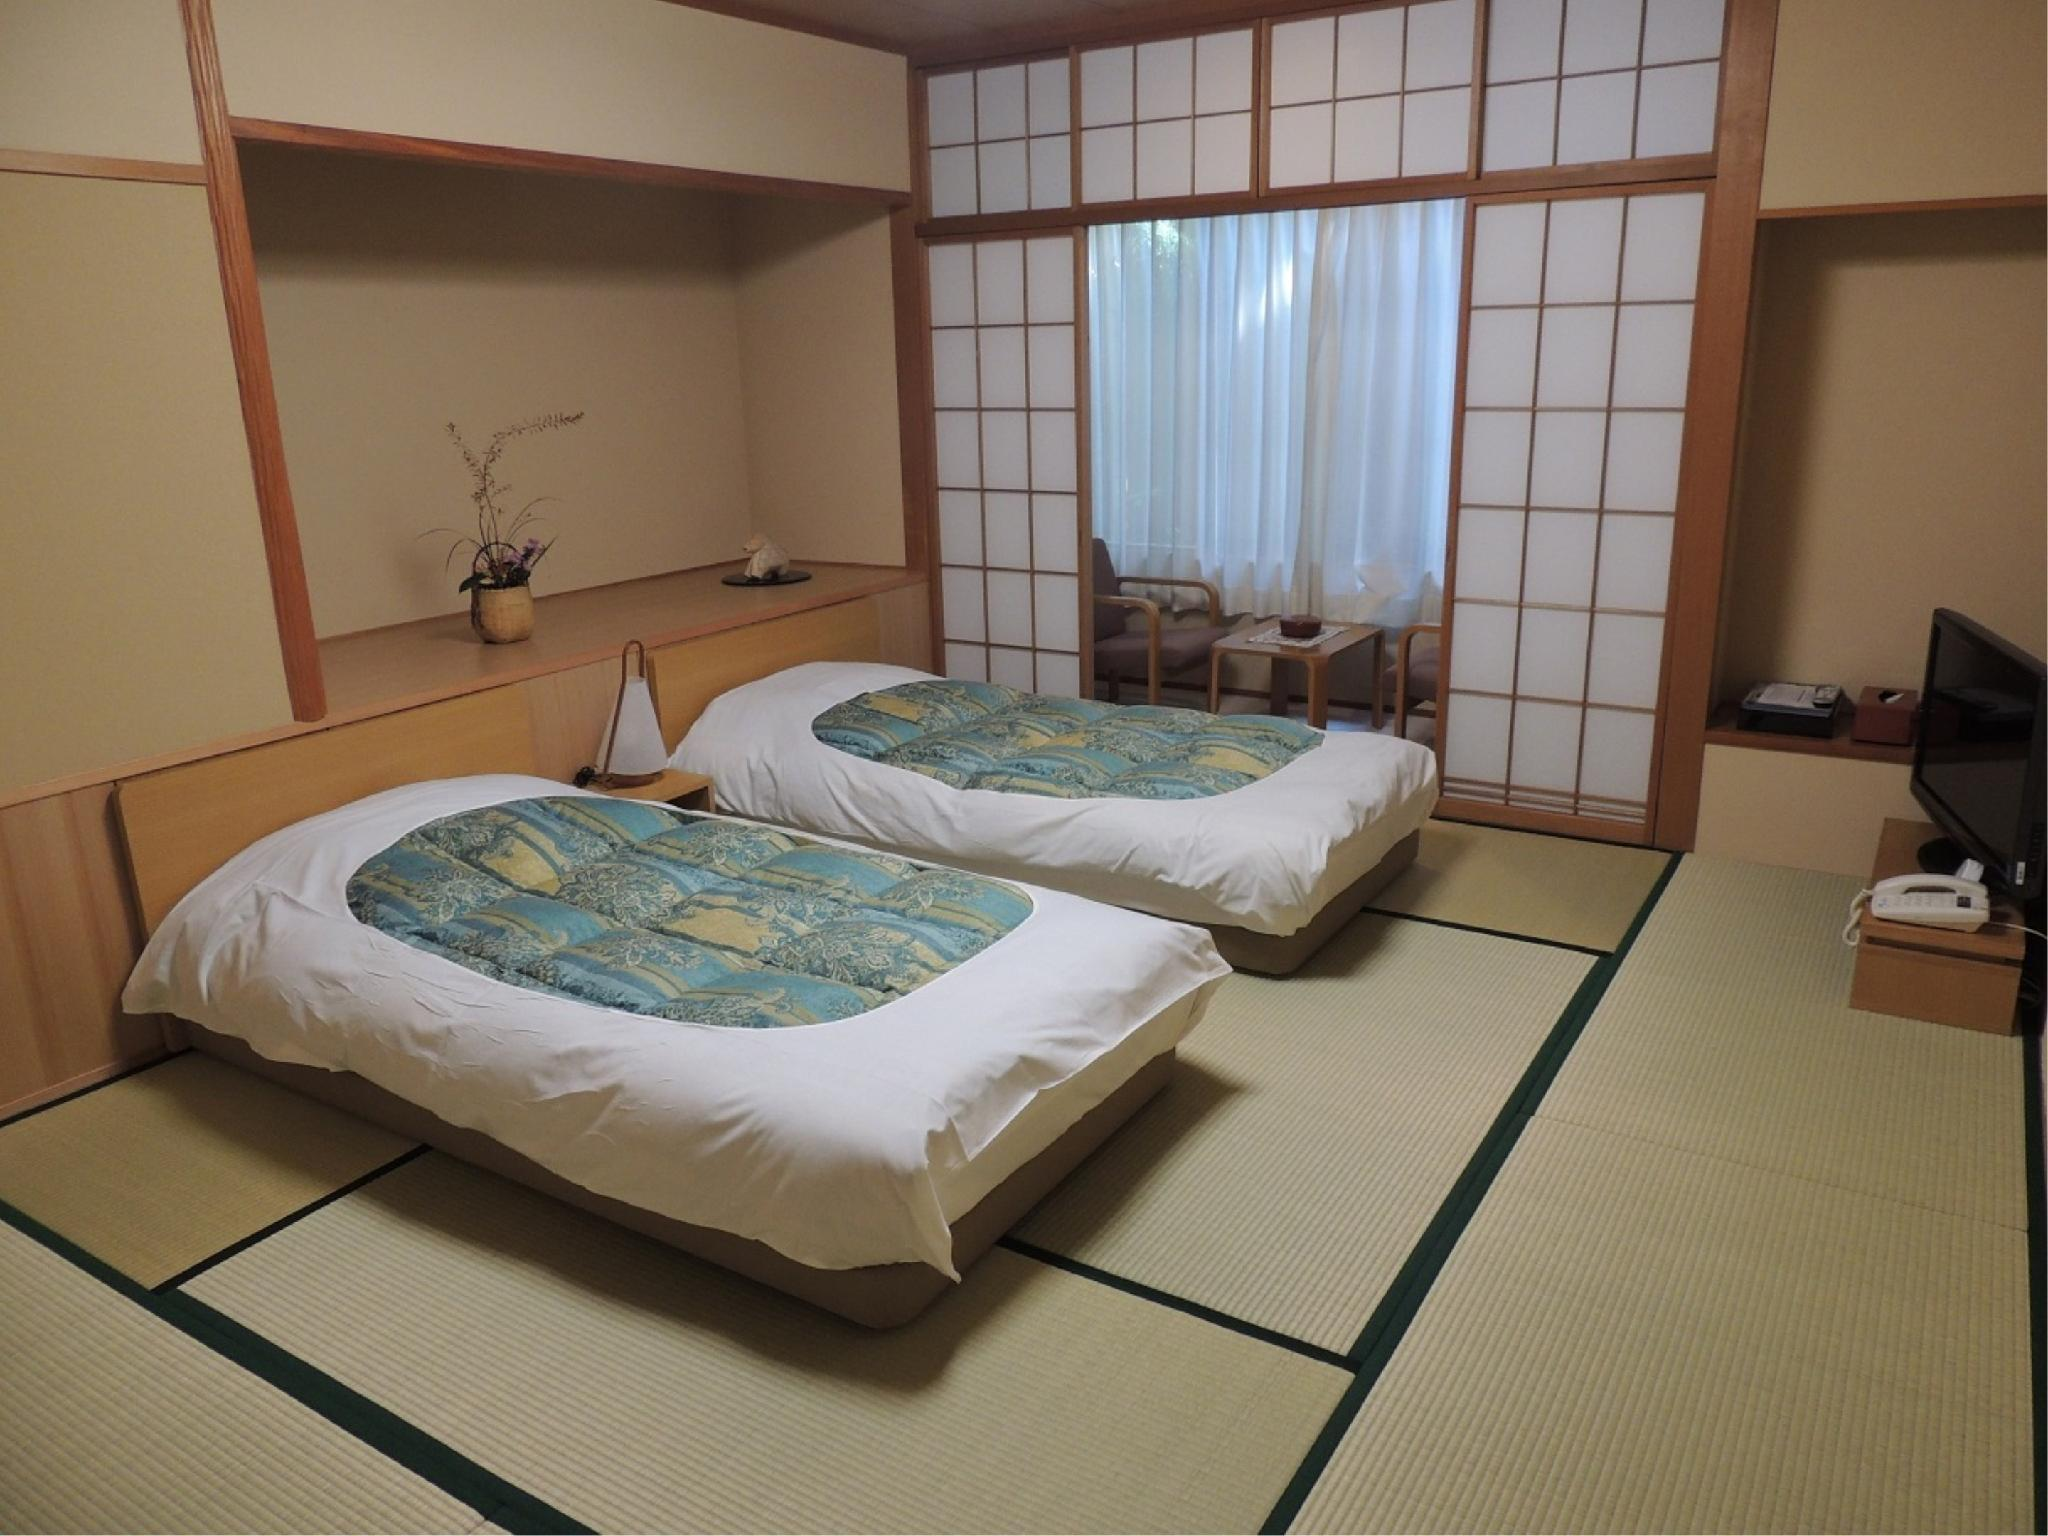 和风房A(附床) (Japanese-style Room with Bed(s) (Type A))